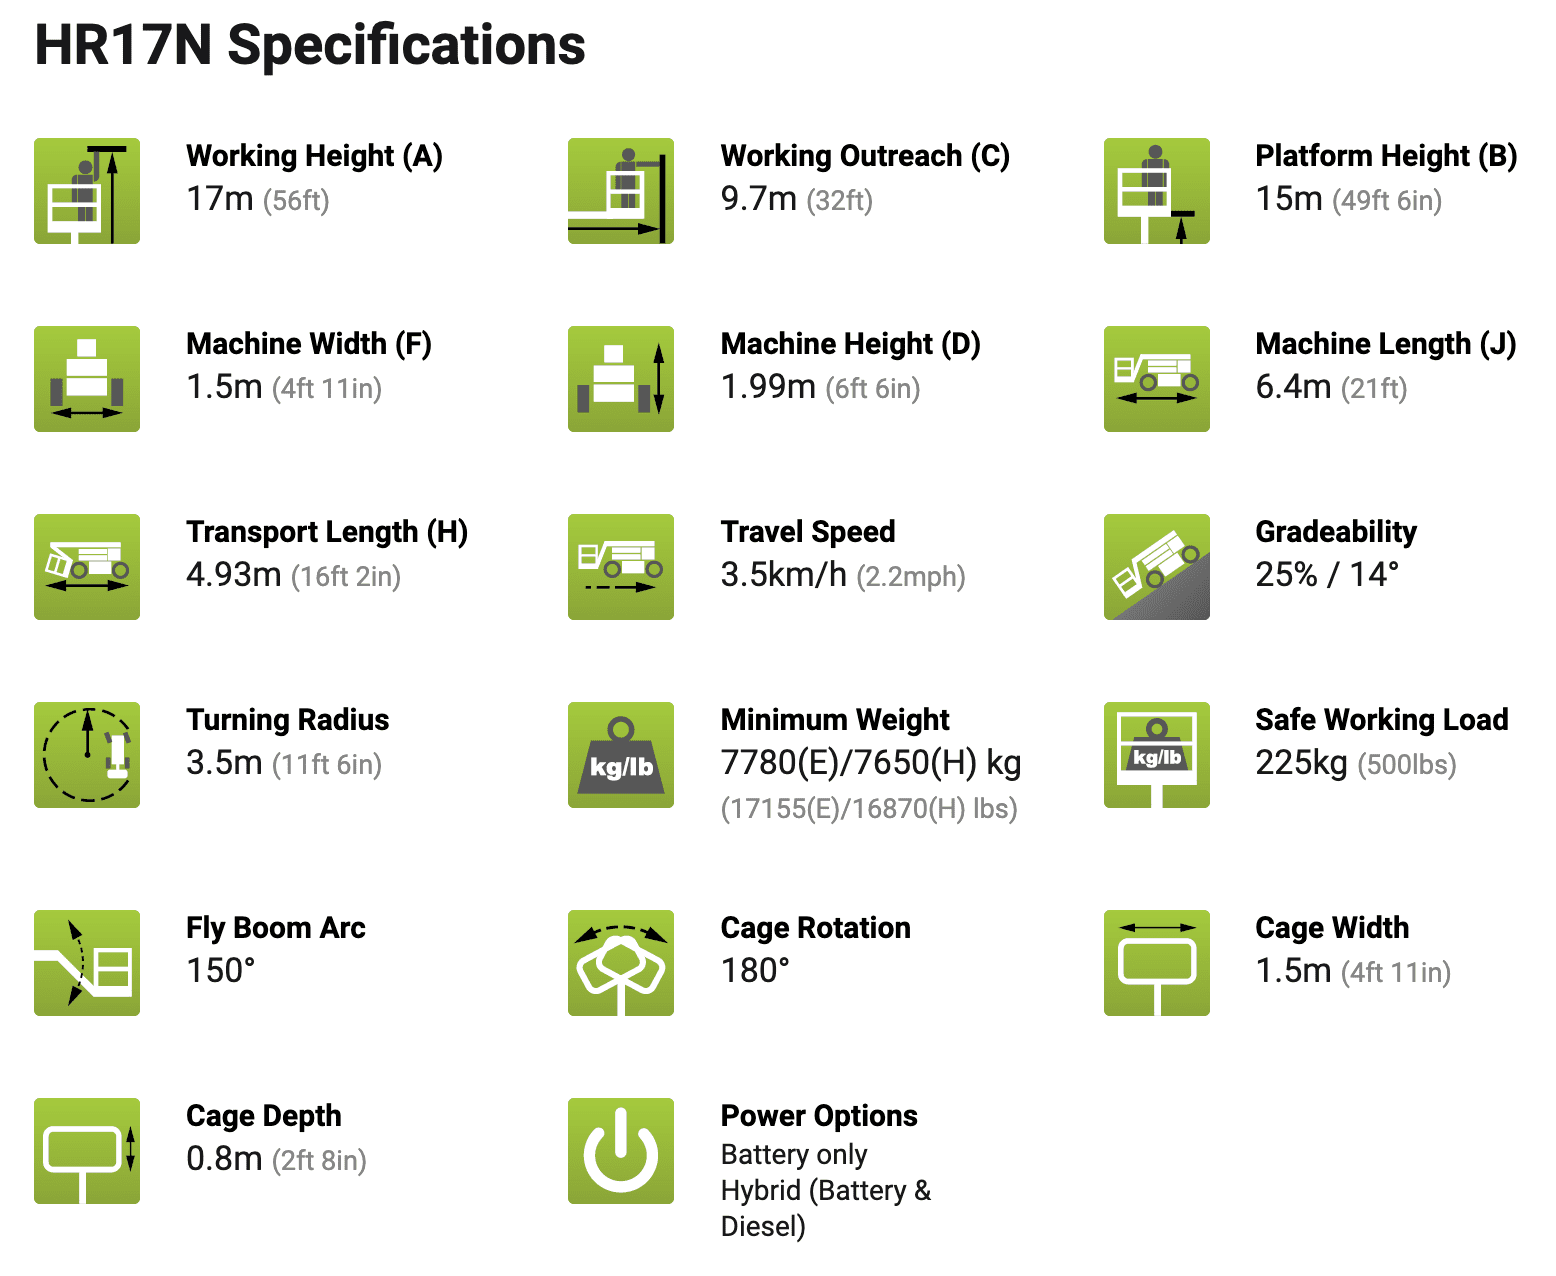 specifications HR17N